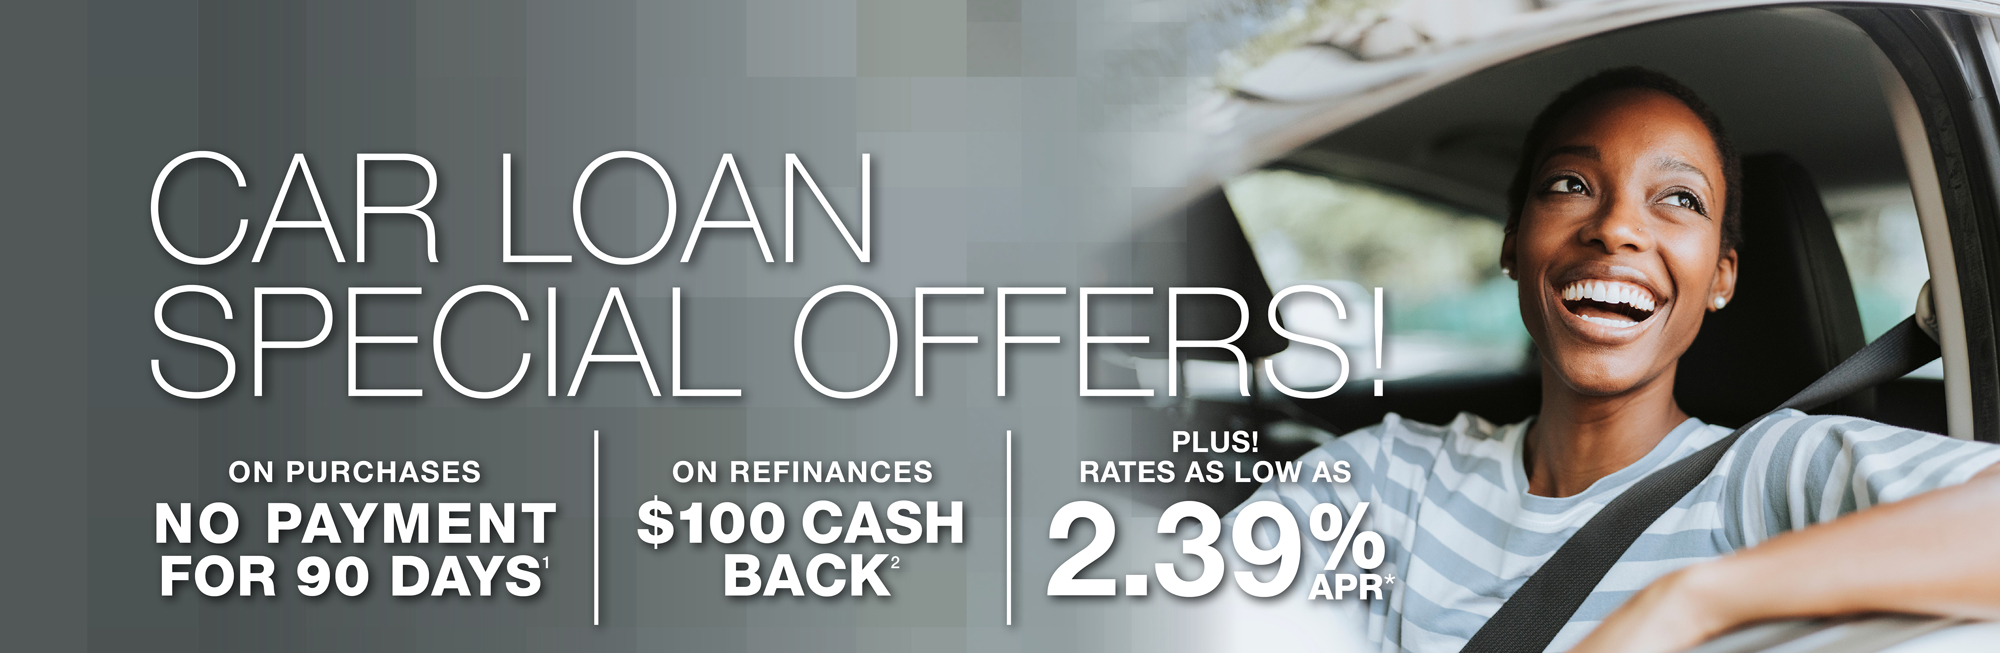 Car Loan Specials! Click to learn more.